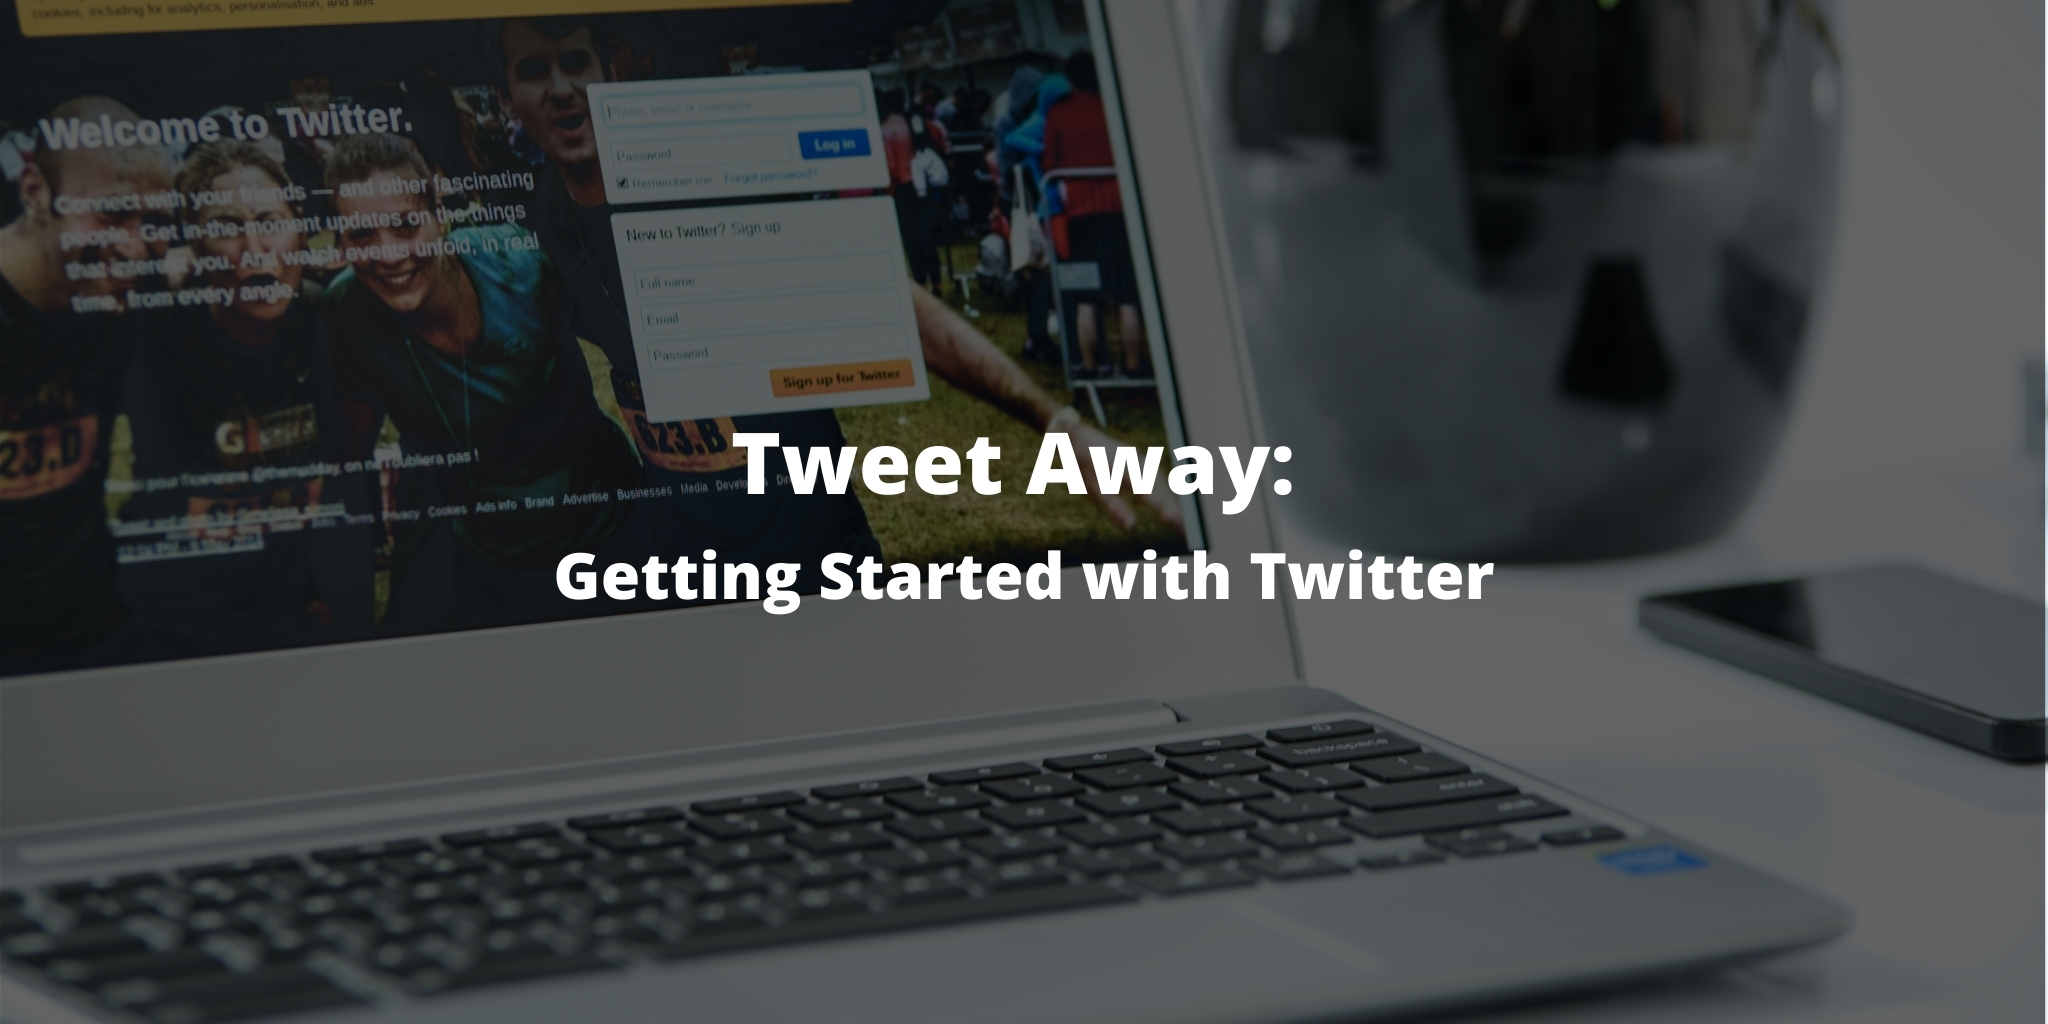 Tweet Away: Getting Started with Twitter